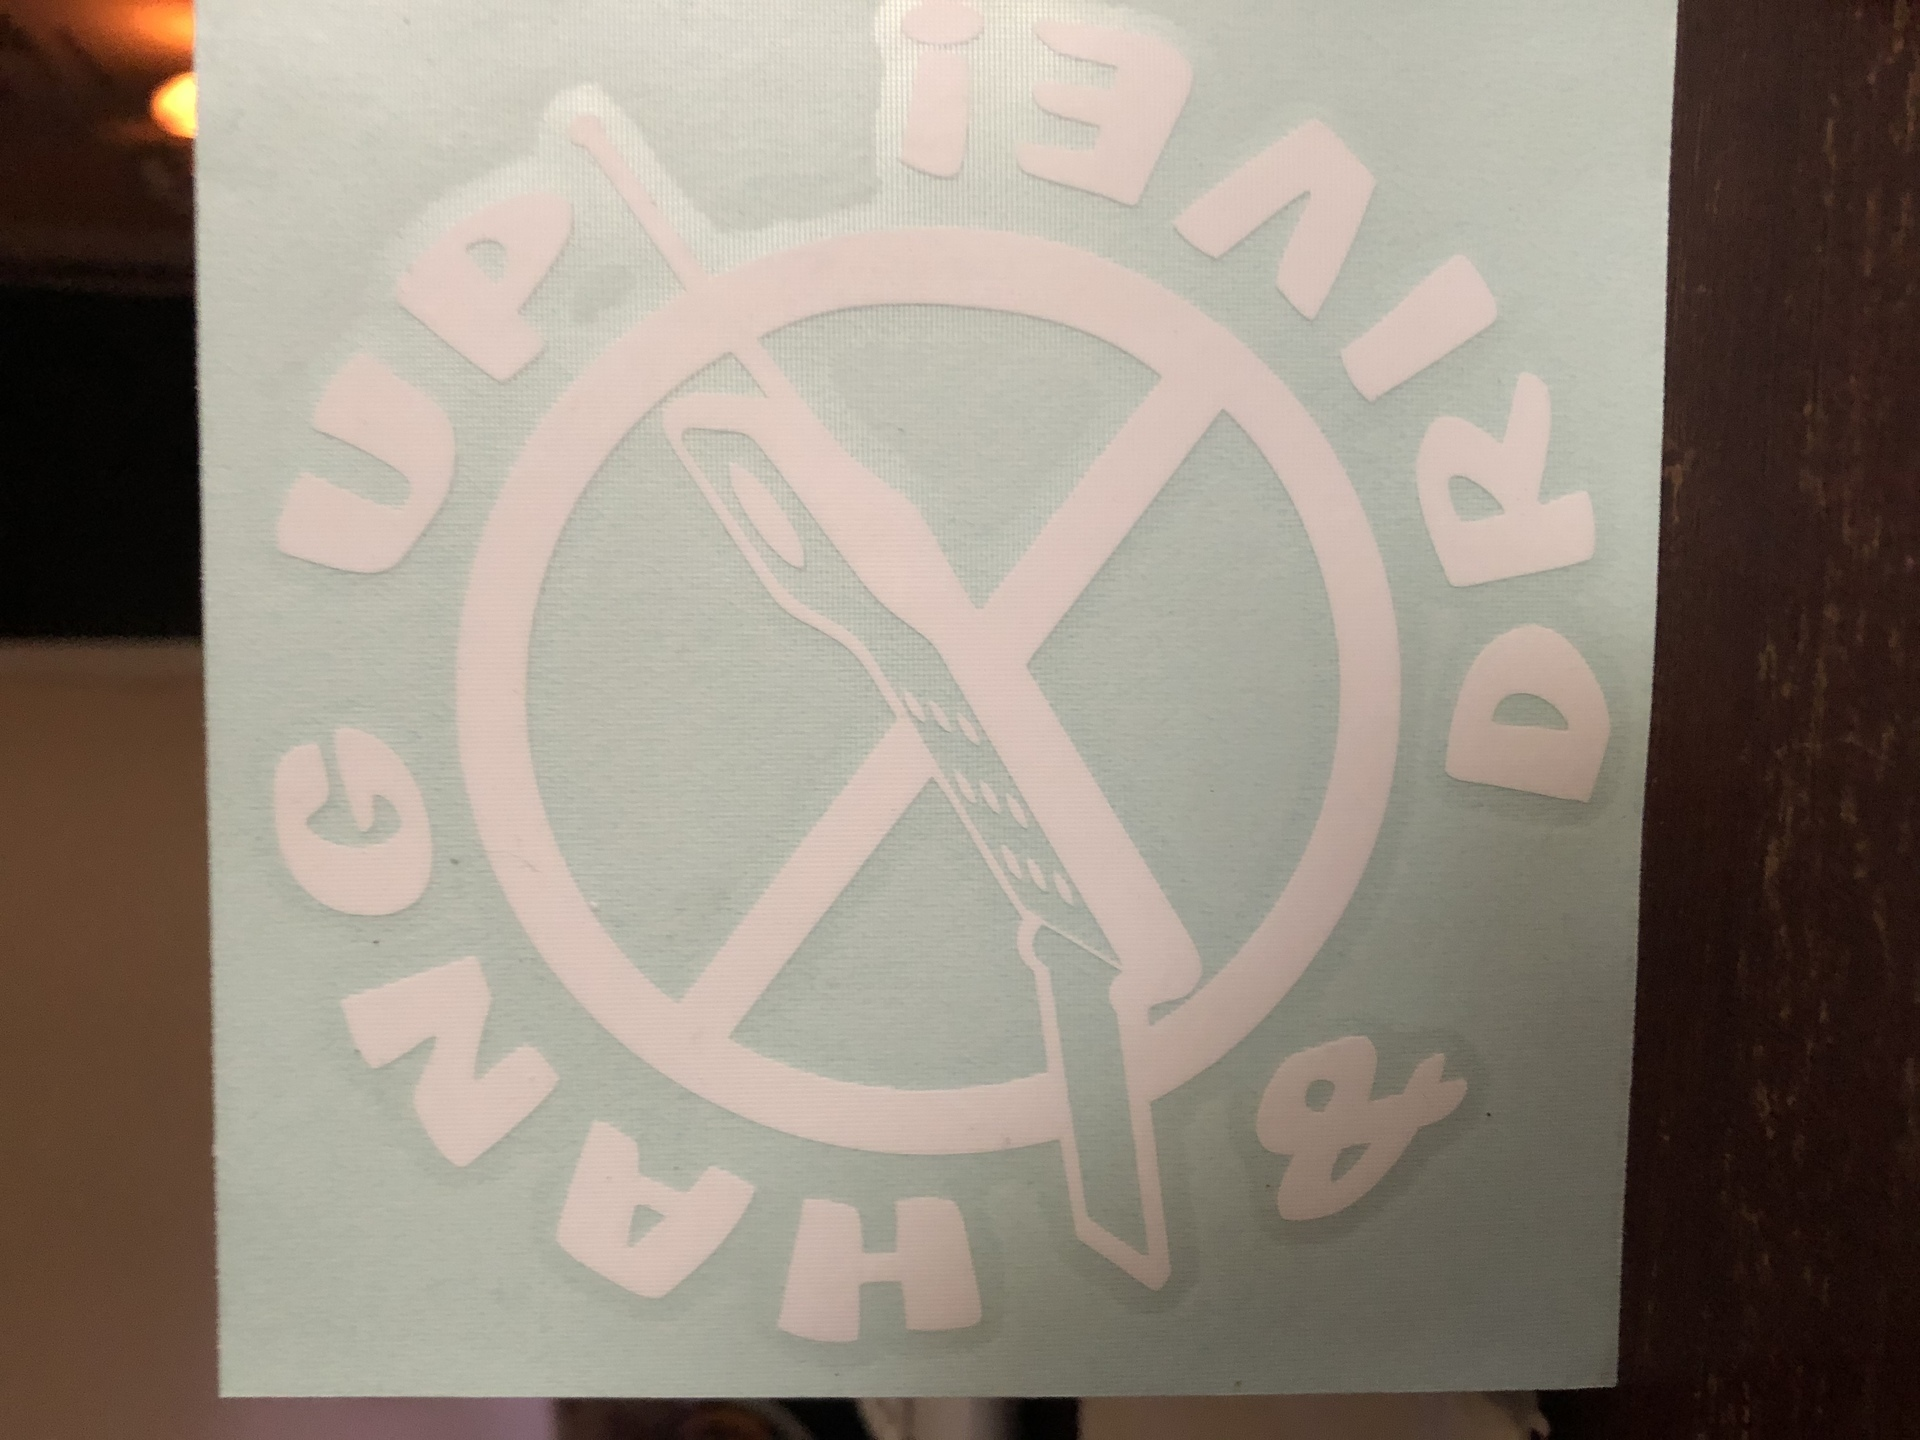 Sonja's photograph of their Hang Up The Cell Phone And Drive Vinyl Lettering Sticker